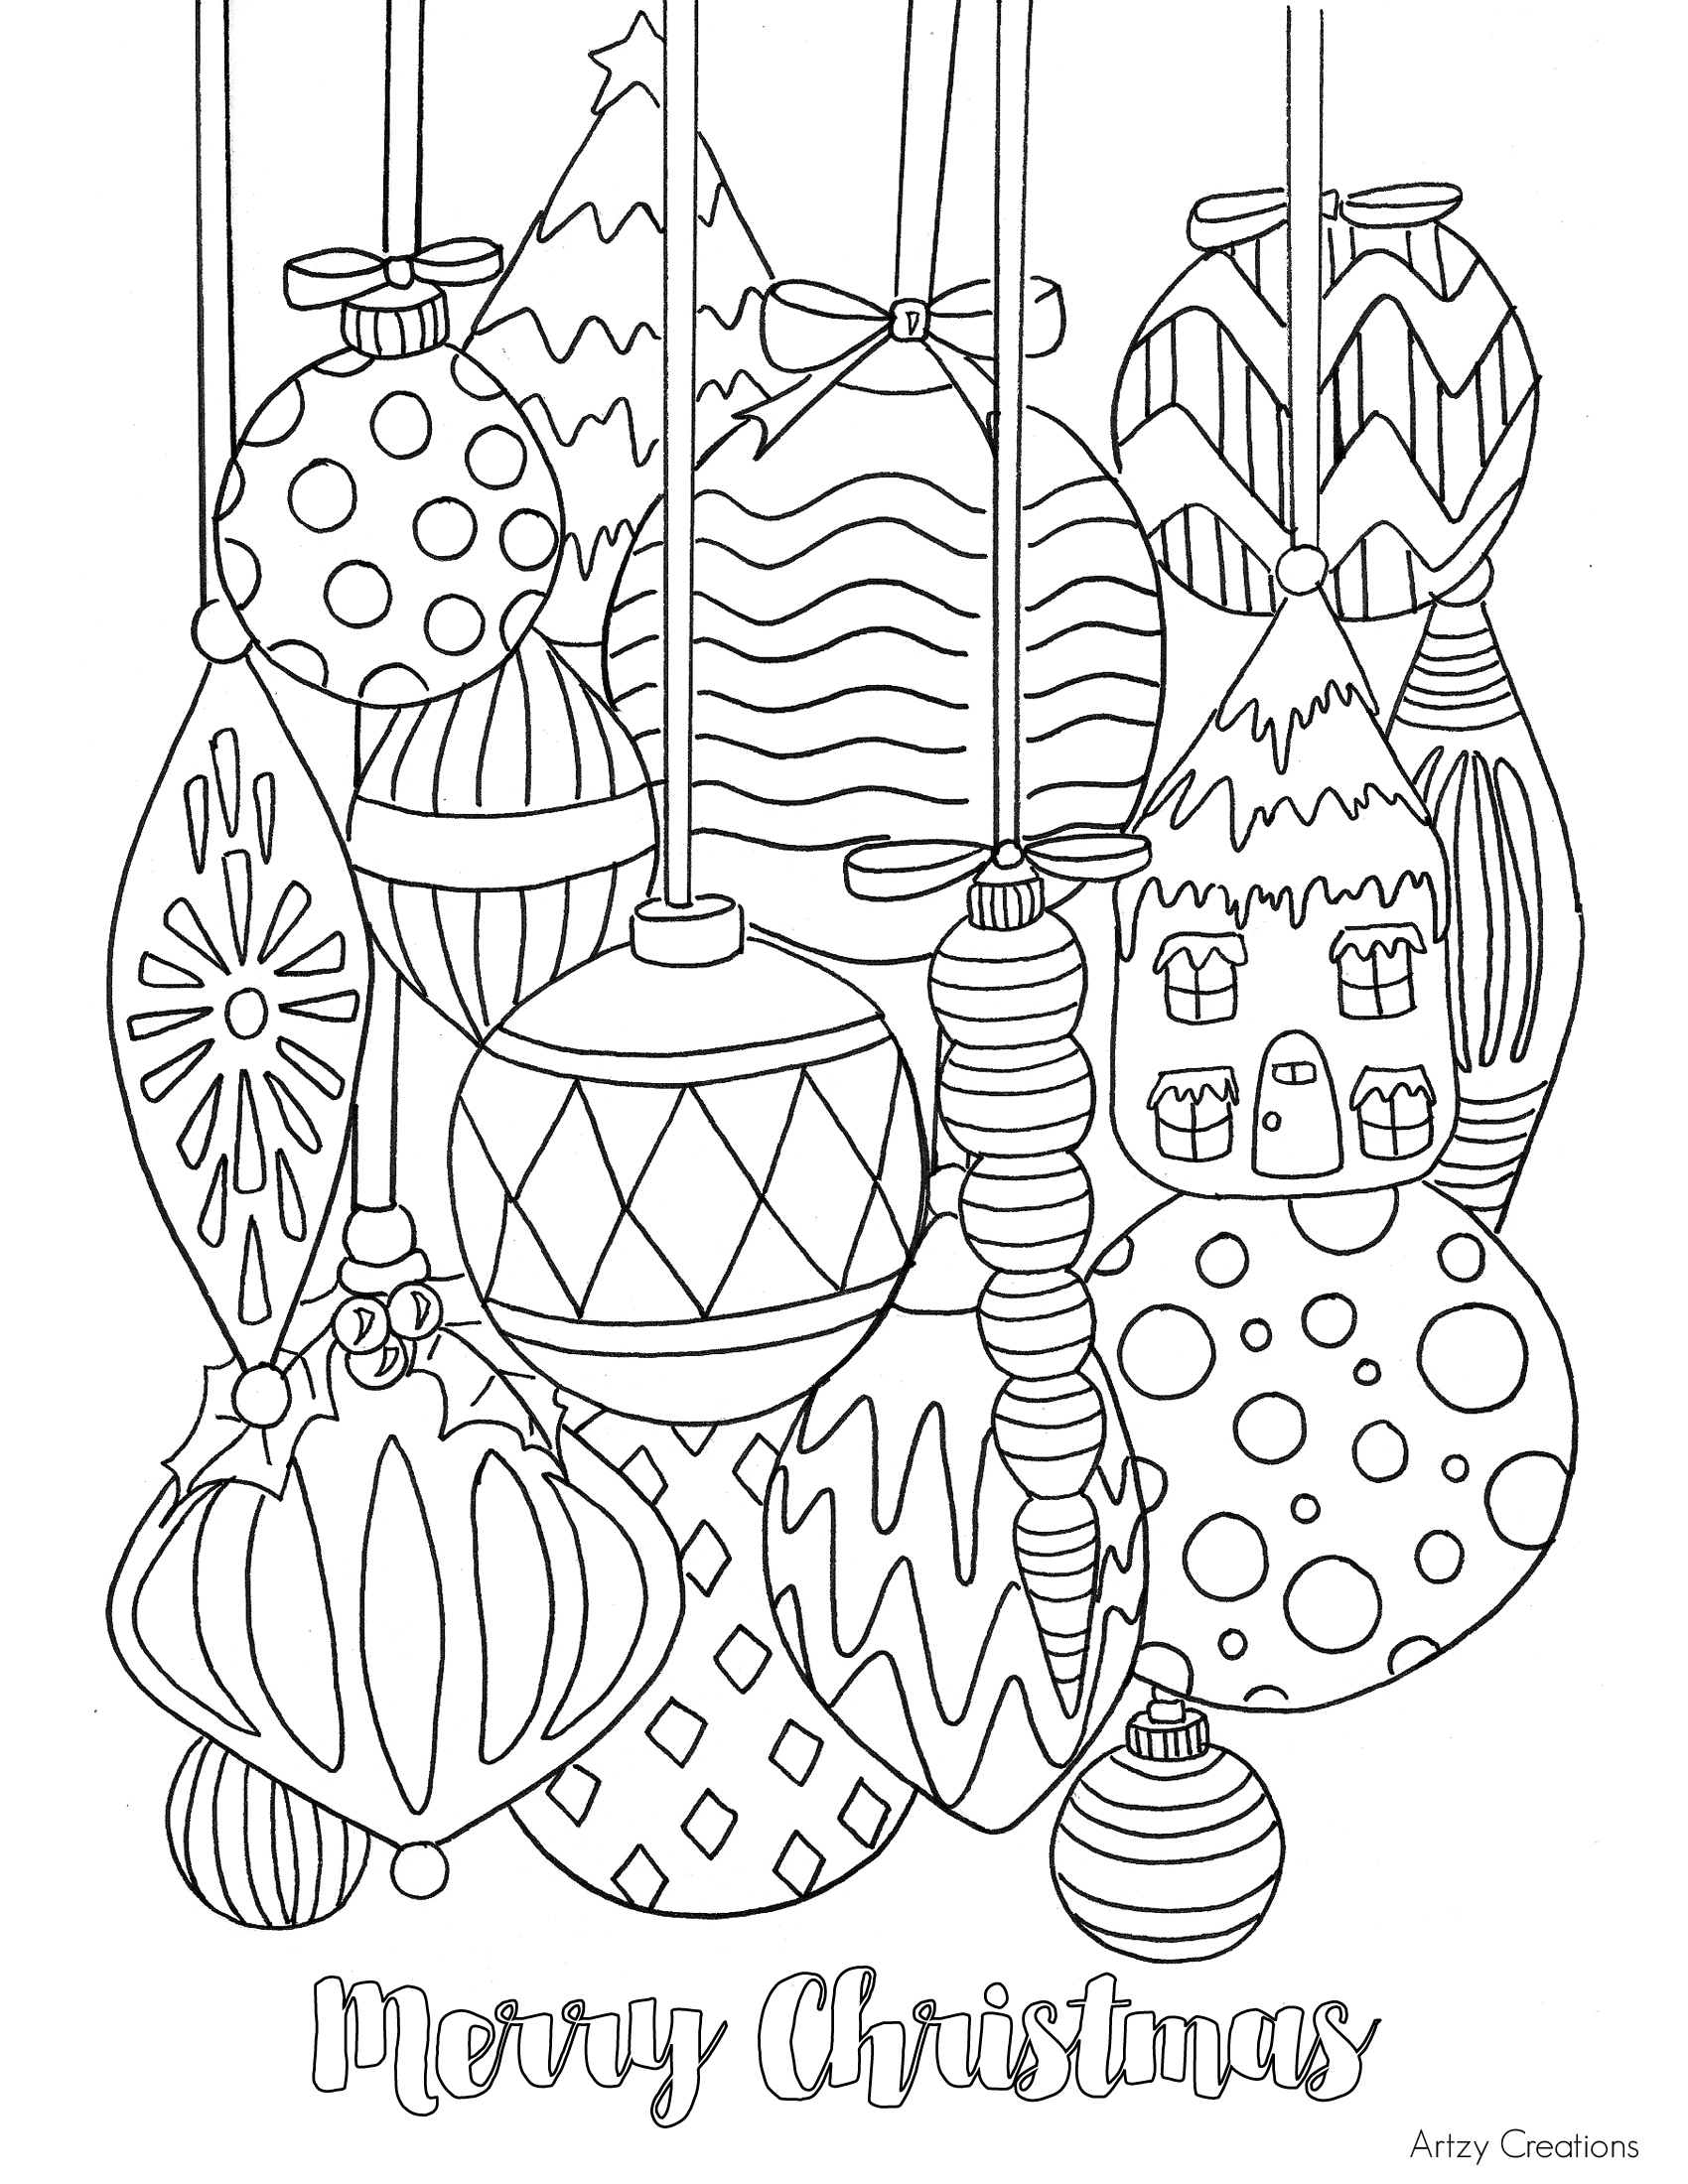 Free Christmas Ornament Coloring Page artzycreations